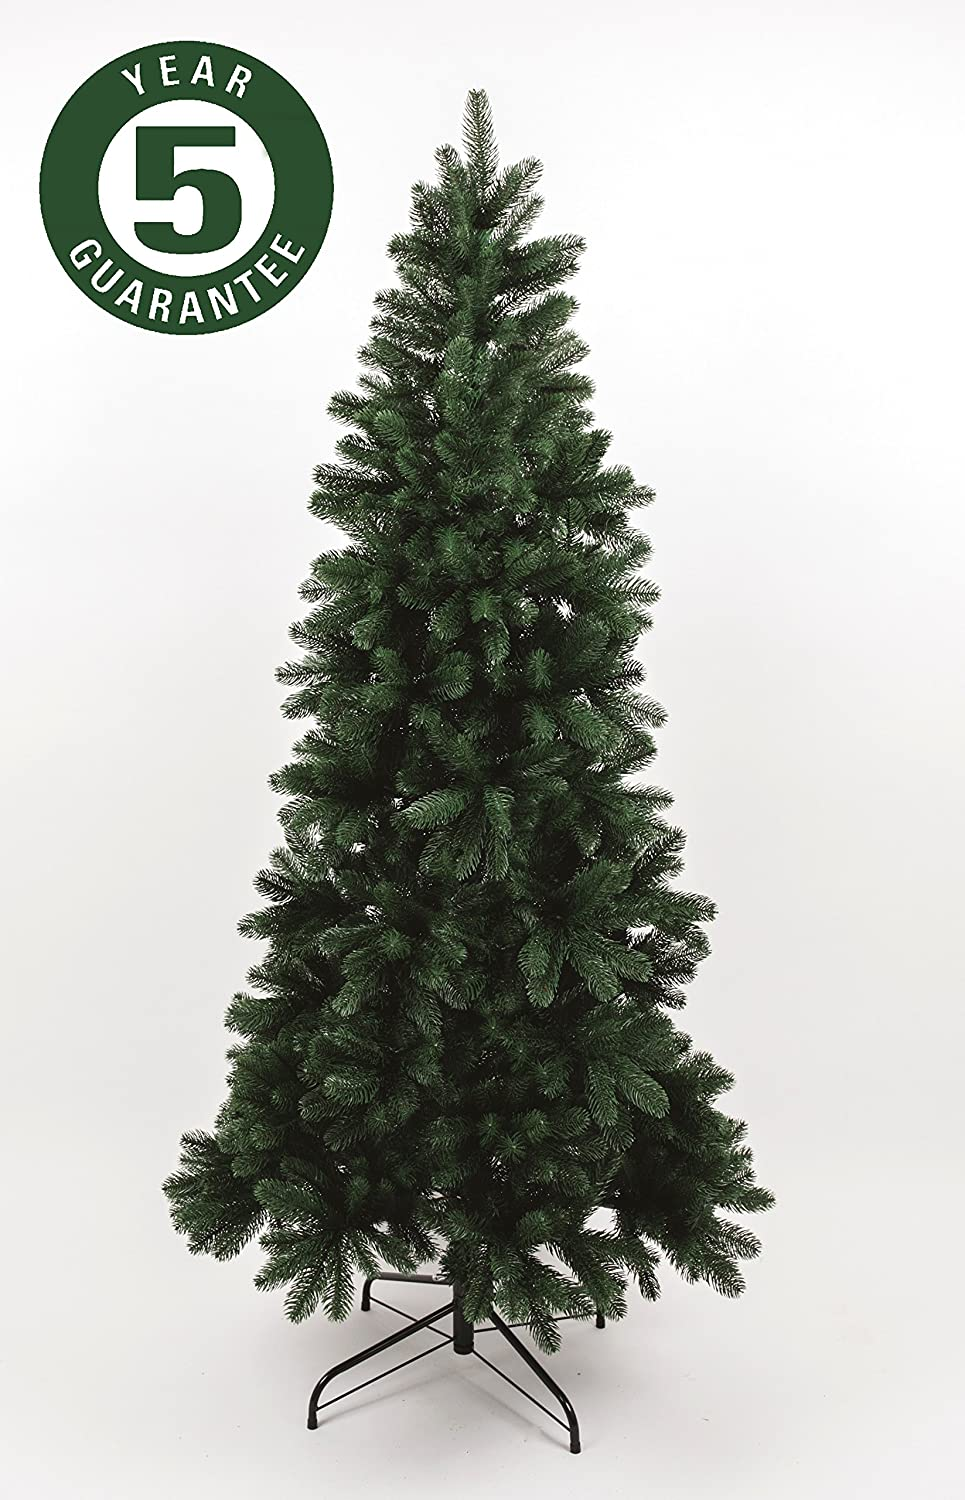 best artificial slim premium 7ft 205cm real feel hinged christmas tree with 1100 full pe tips for indoor xmas with 5 year guarantee amazoncouk kitchen